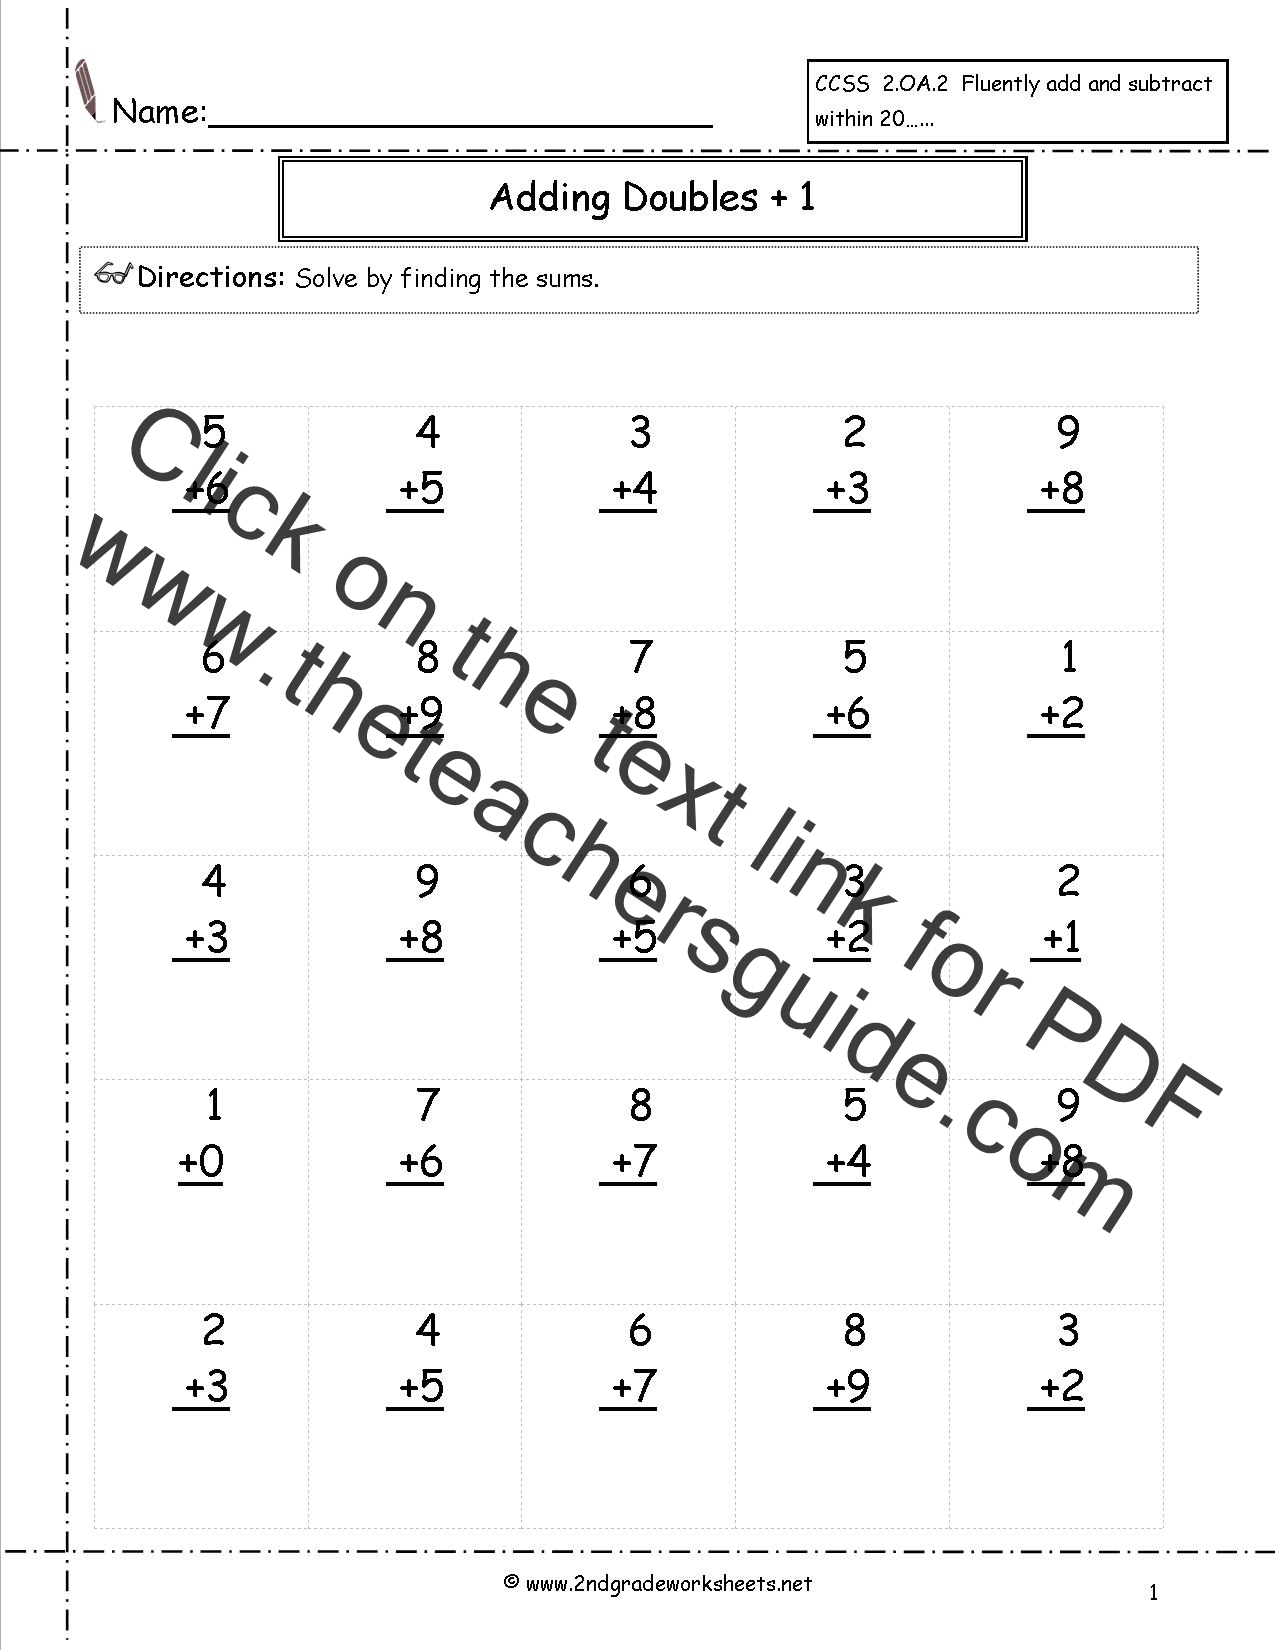 worksheet Single Addition Worksheets free single digit addition worksheets doubles plus one facts worksheet